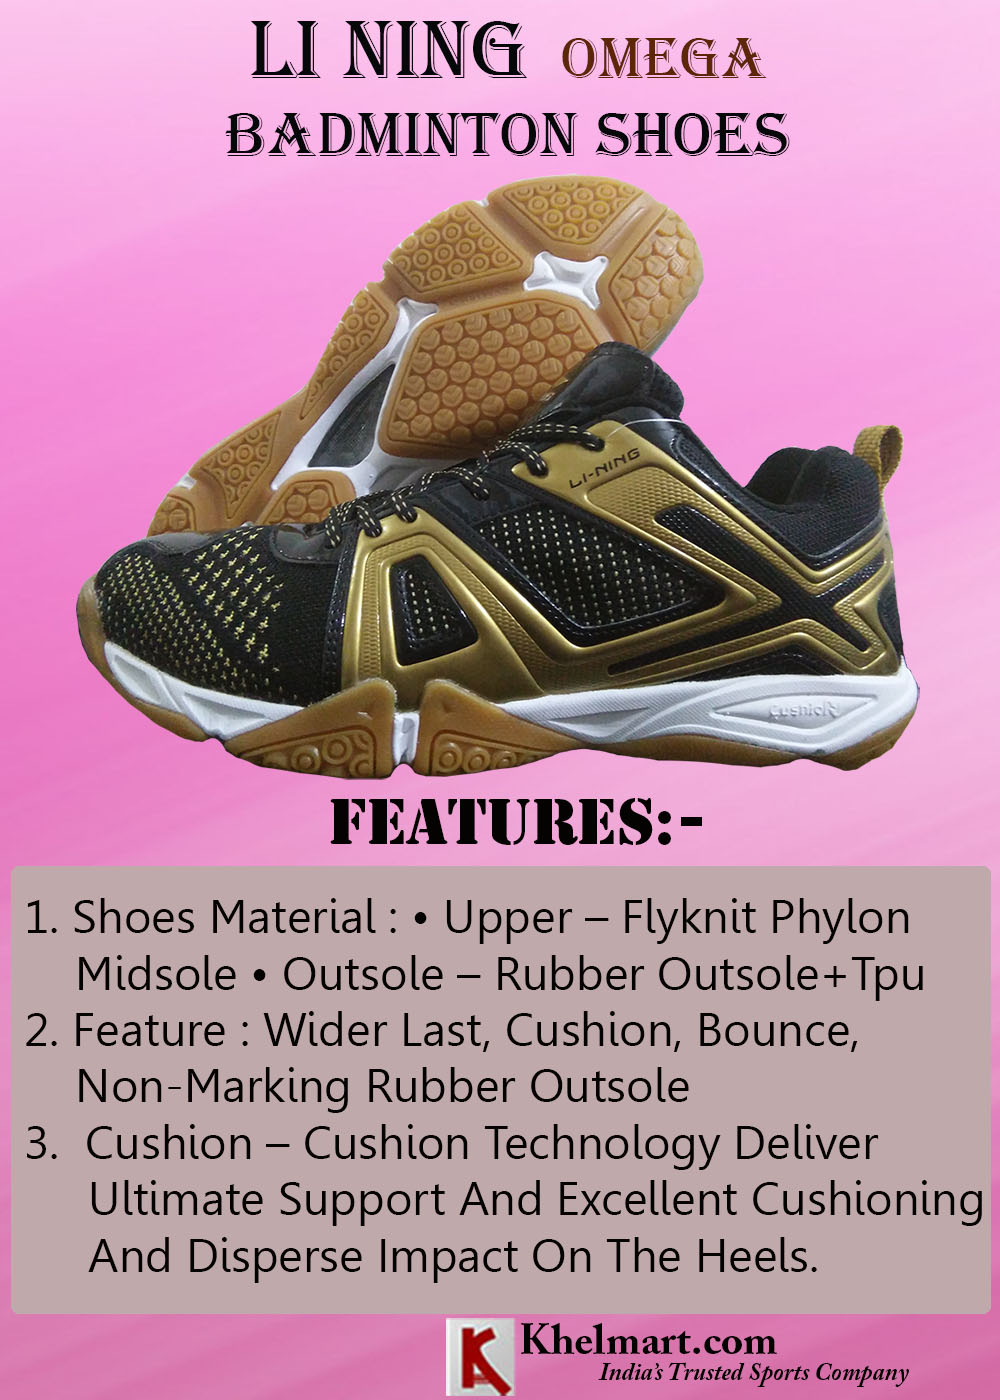 LI NING Omega Badminton Shoes